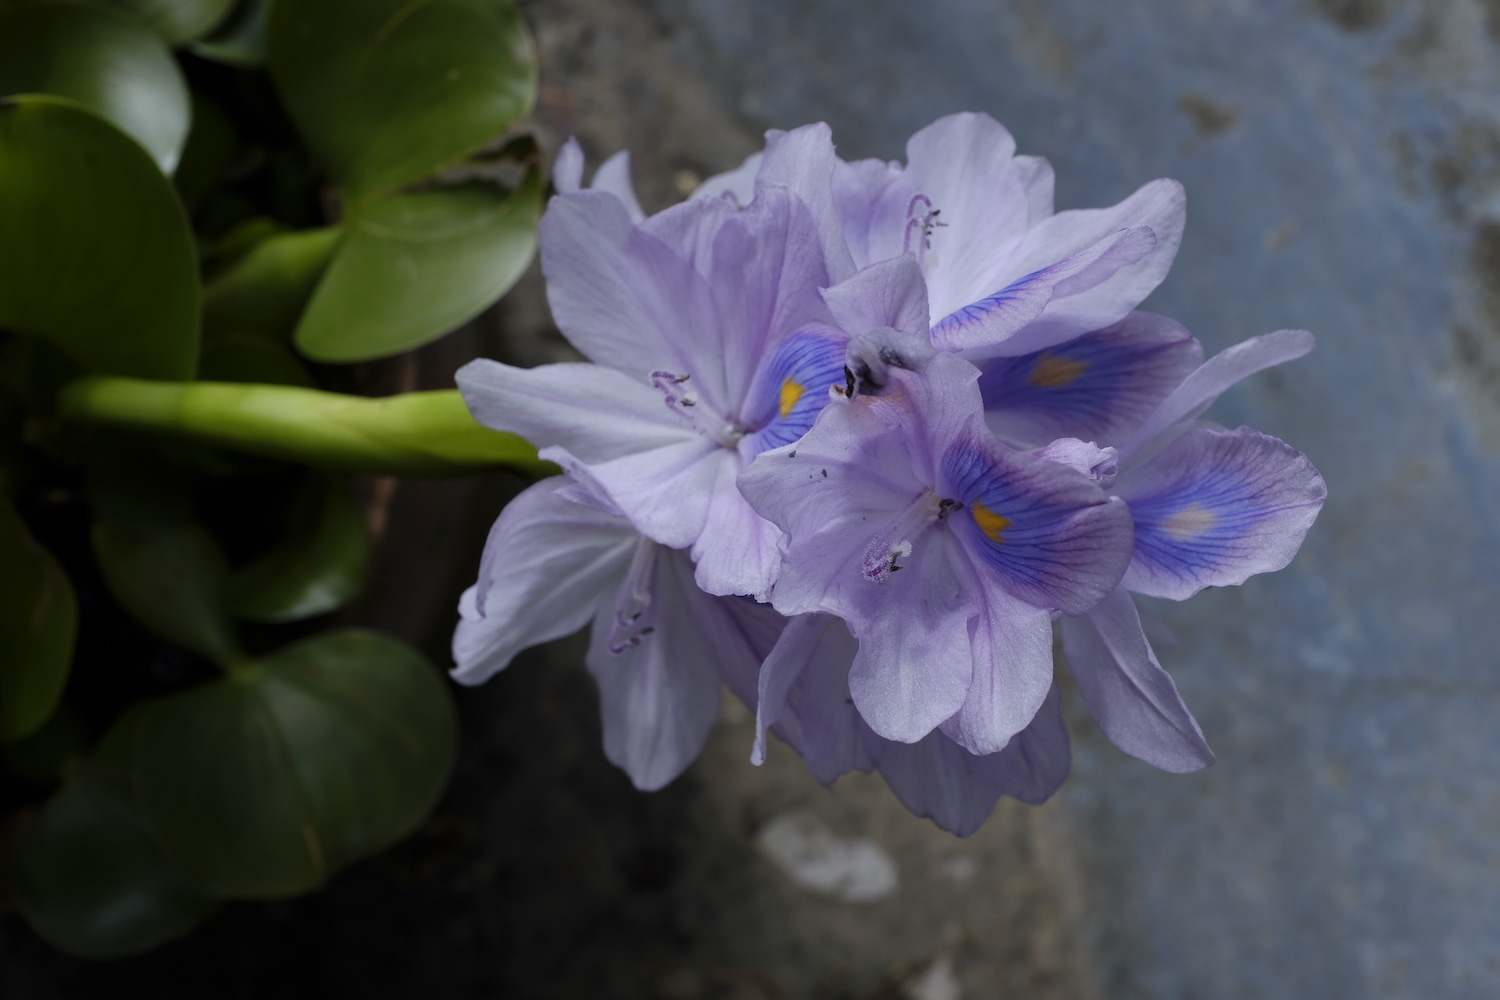 A common water hyacinth flower